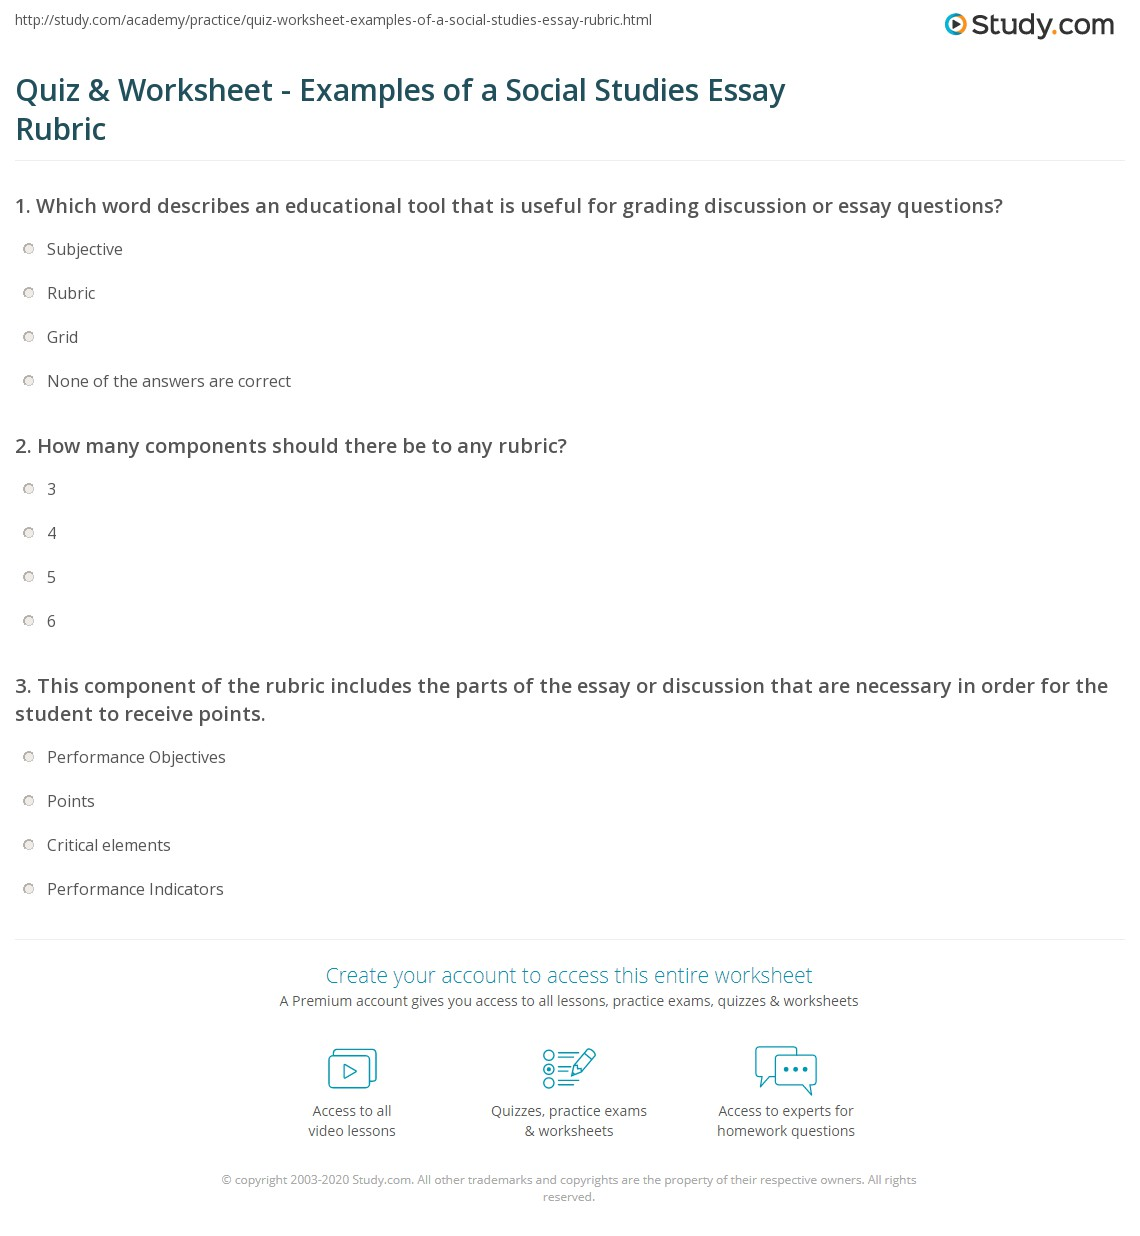 quiz worksheet examples of a social studies essay rubric print social studies essay rubric examples worksheet